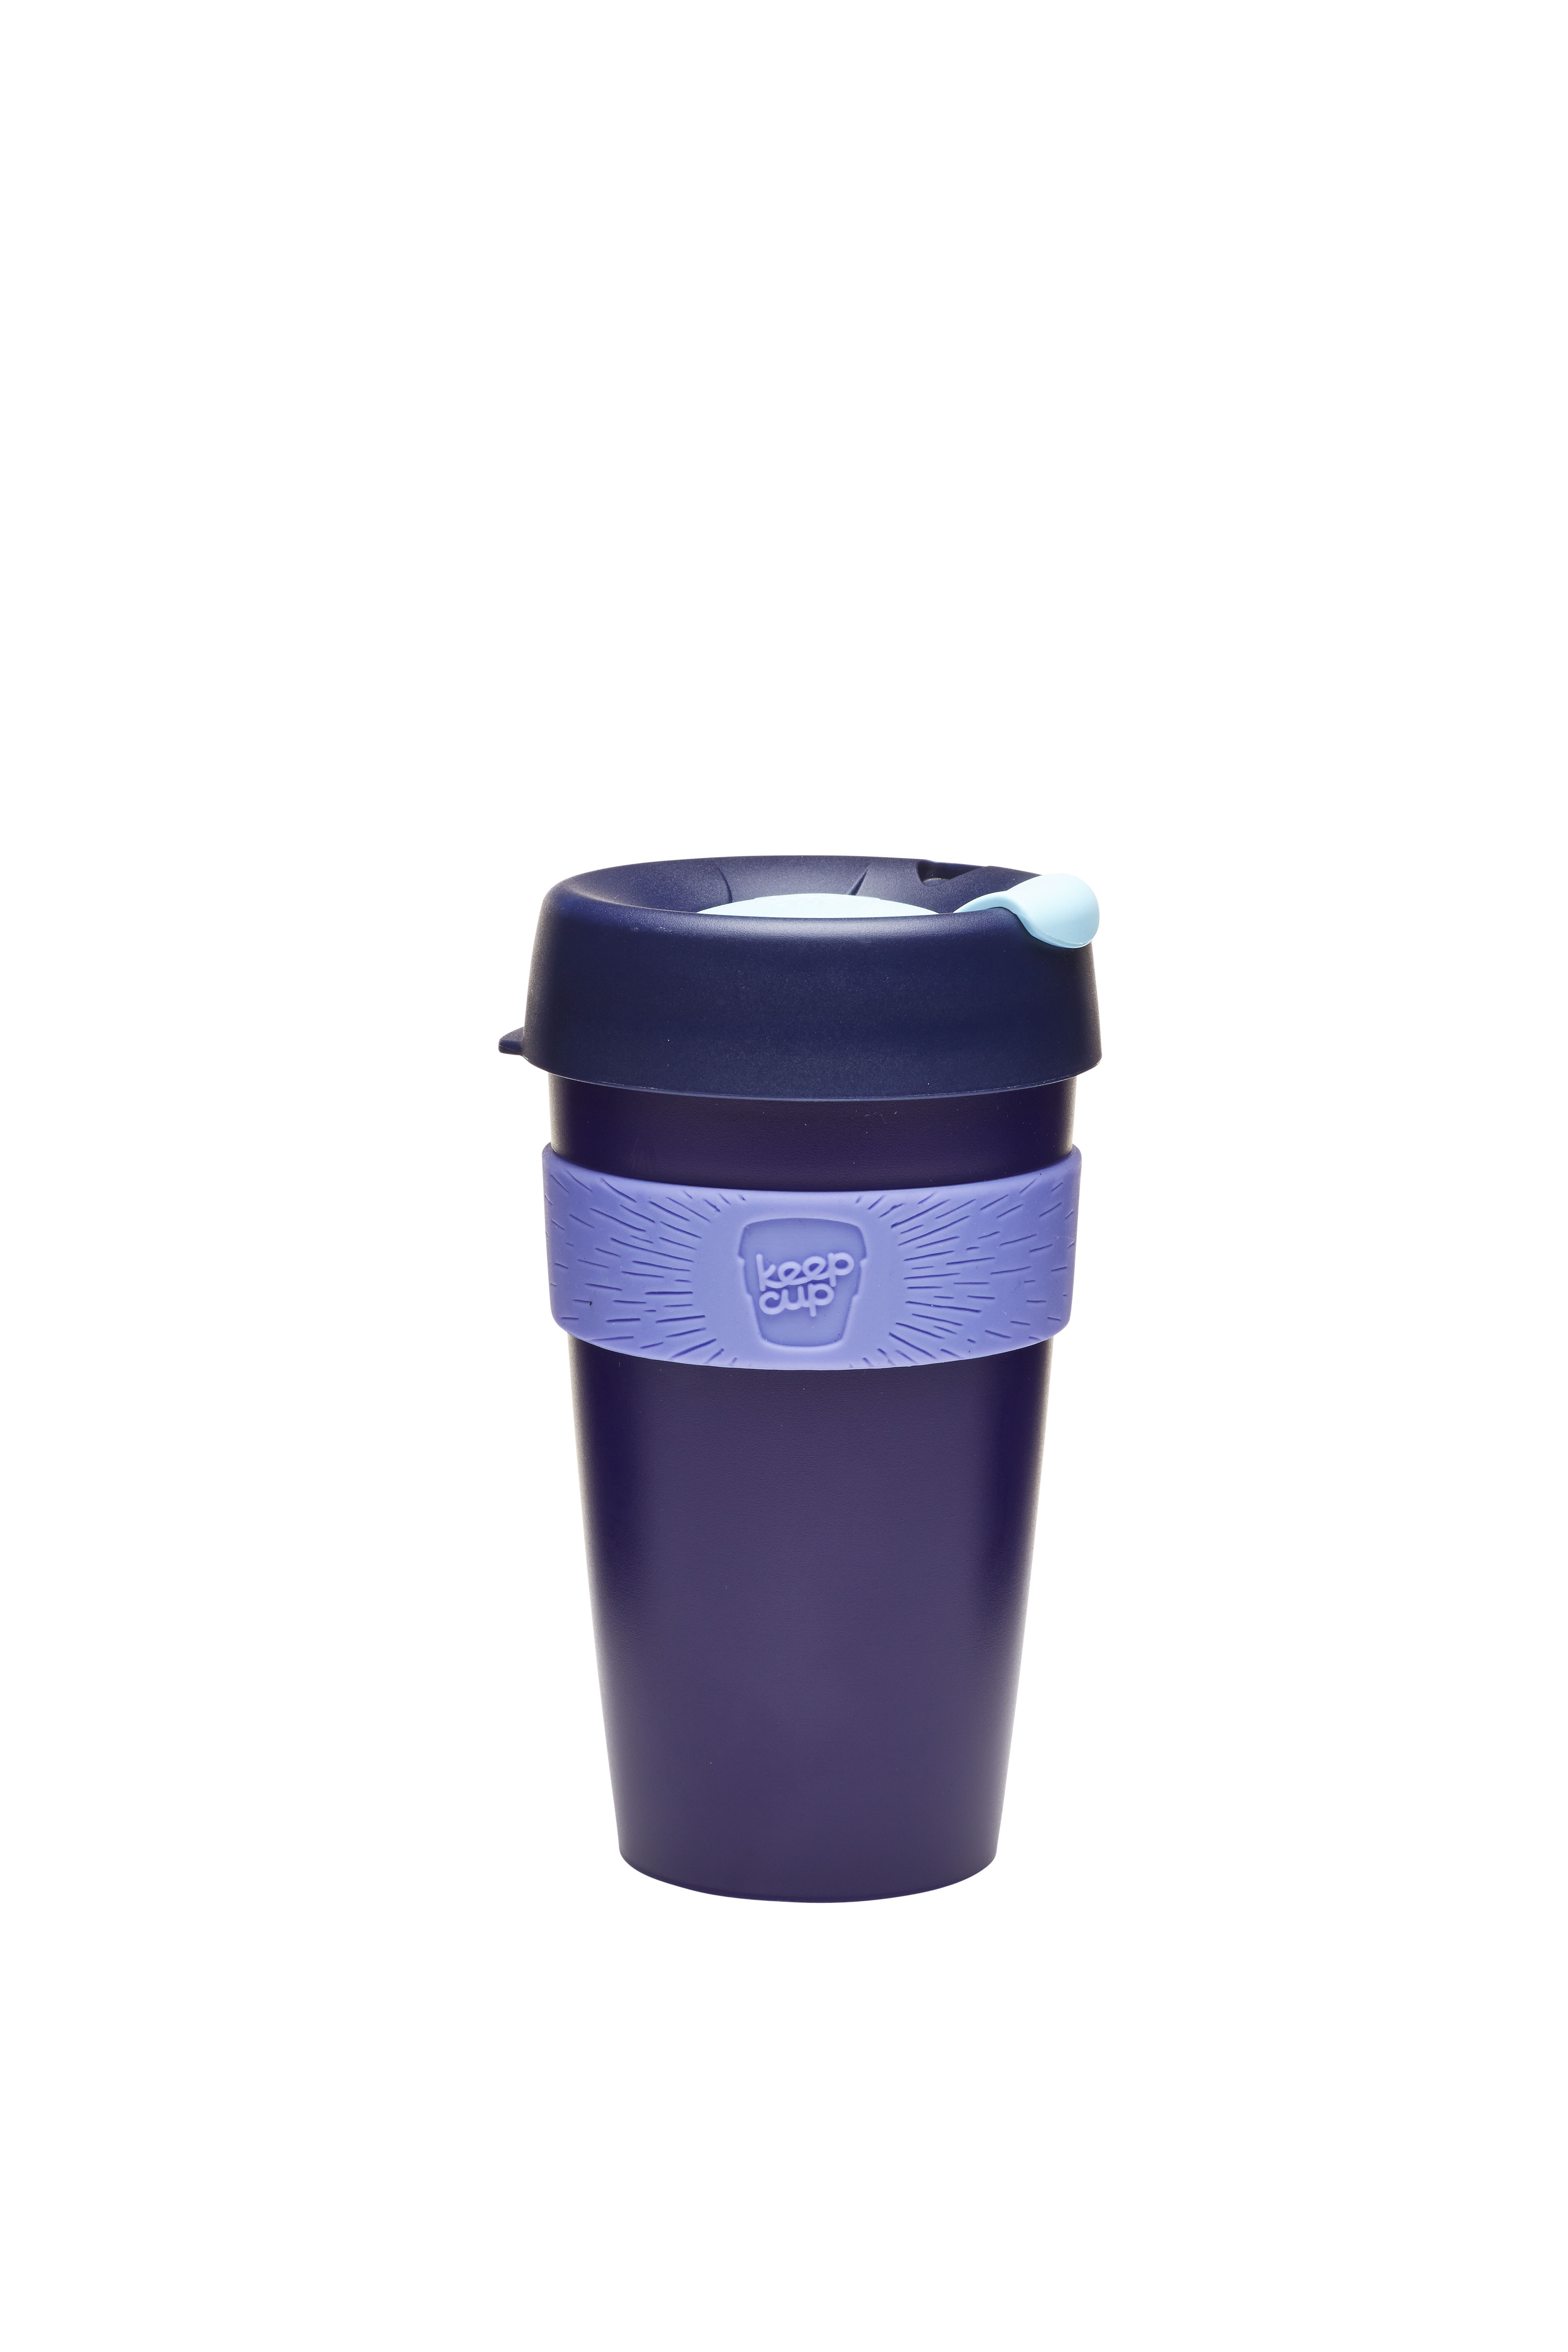 TERMOHRNEK KEEPCUP, BLUEBERRY L